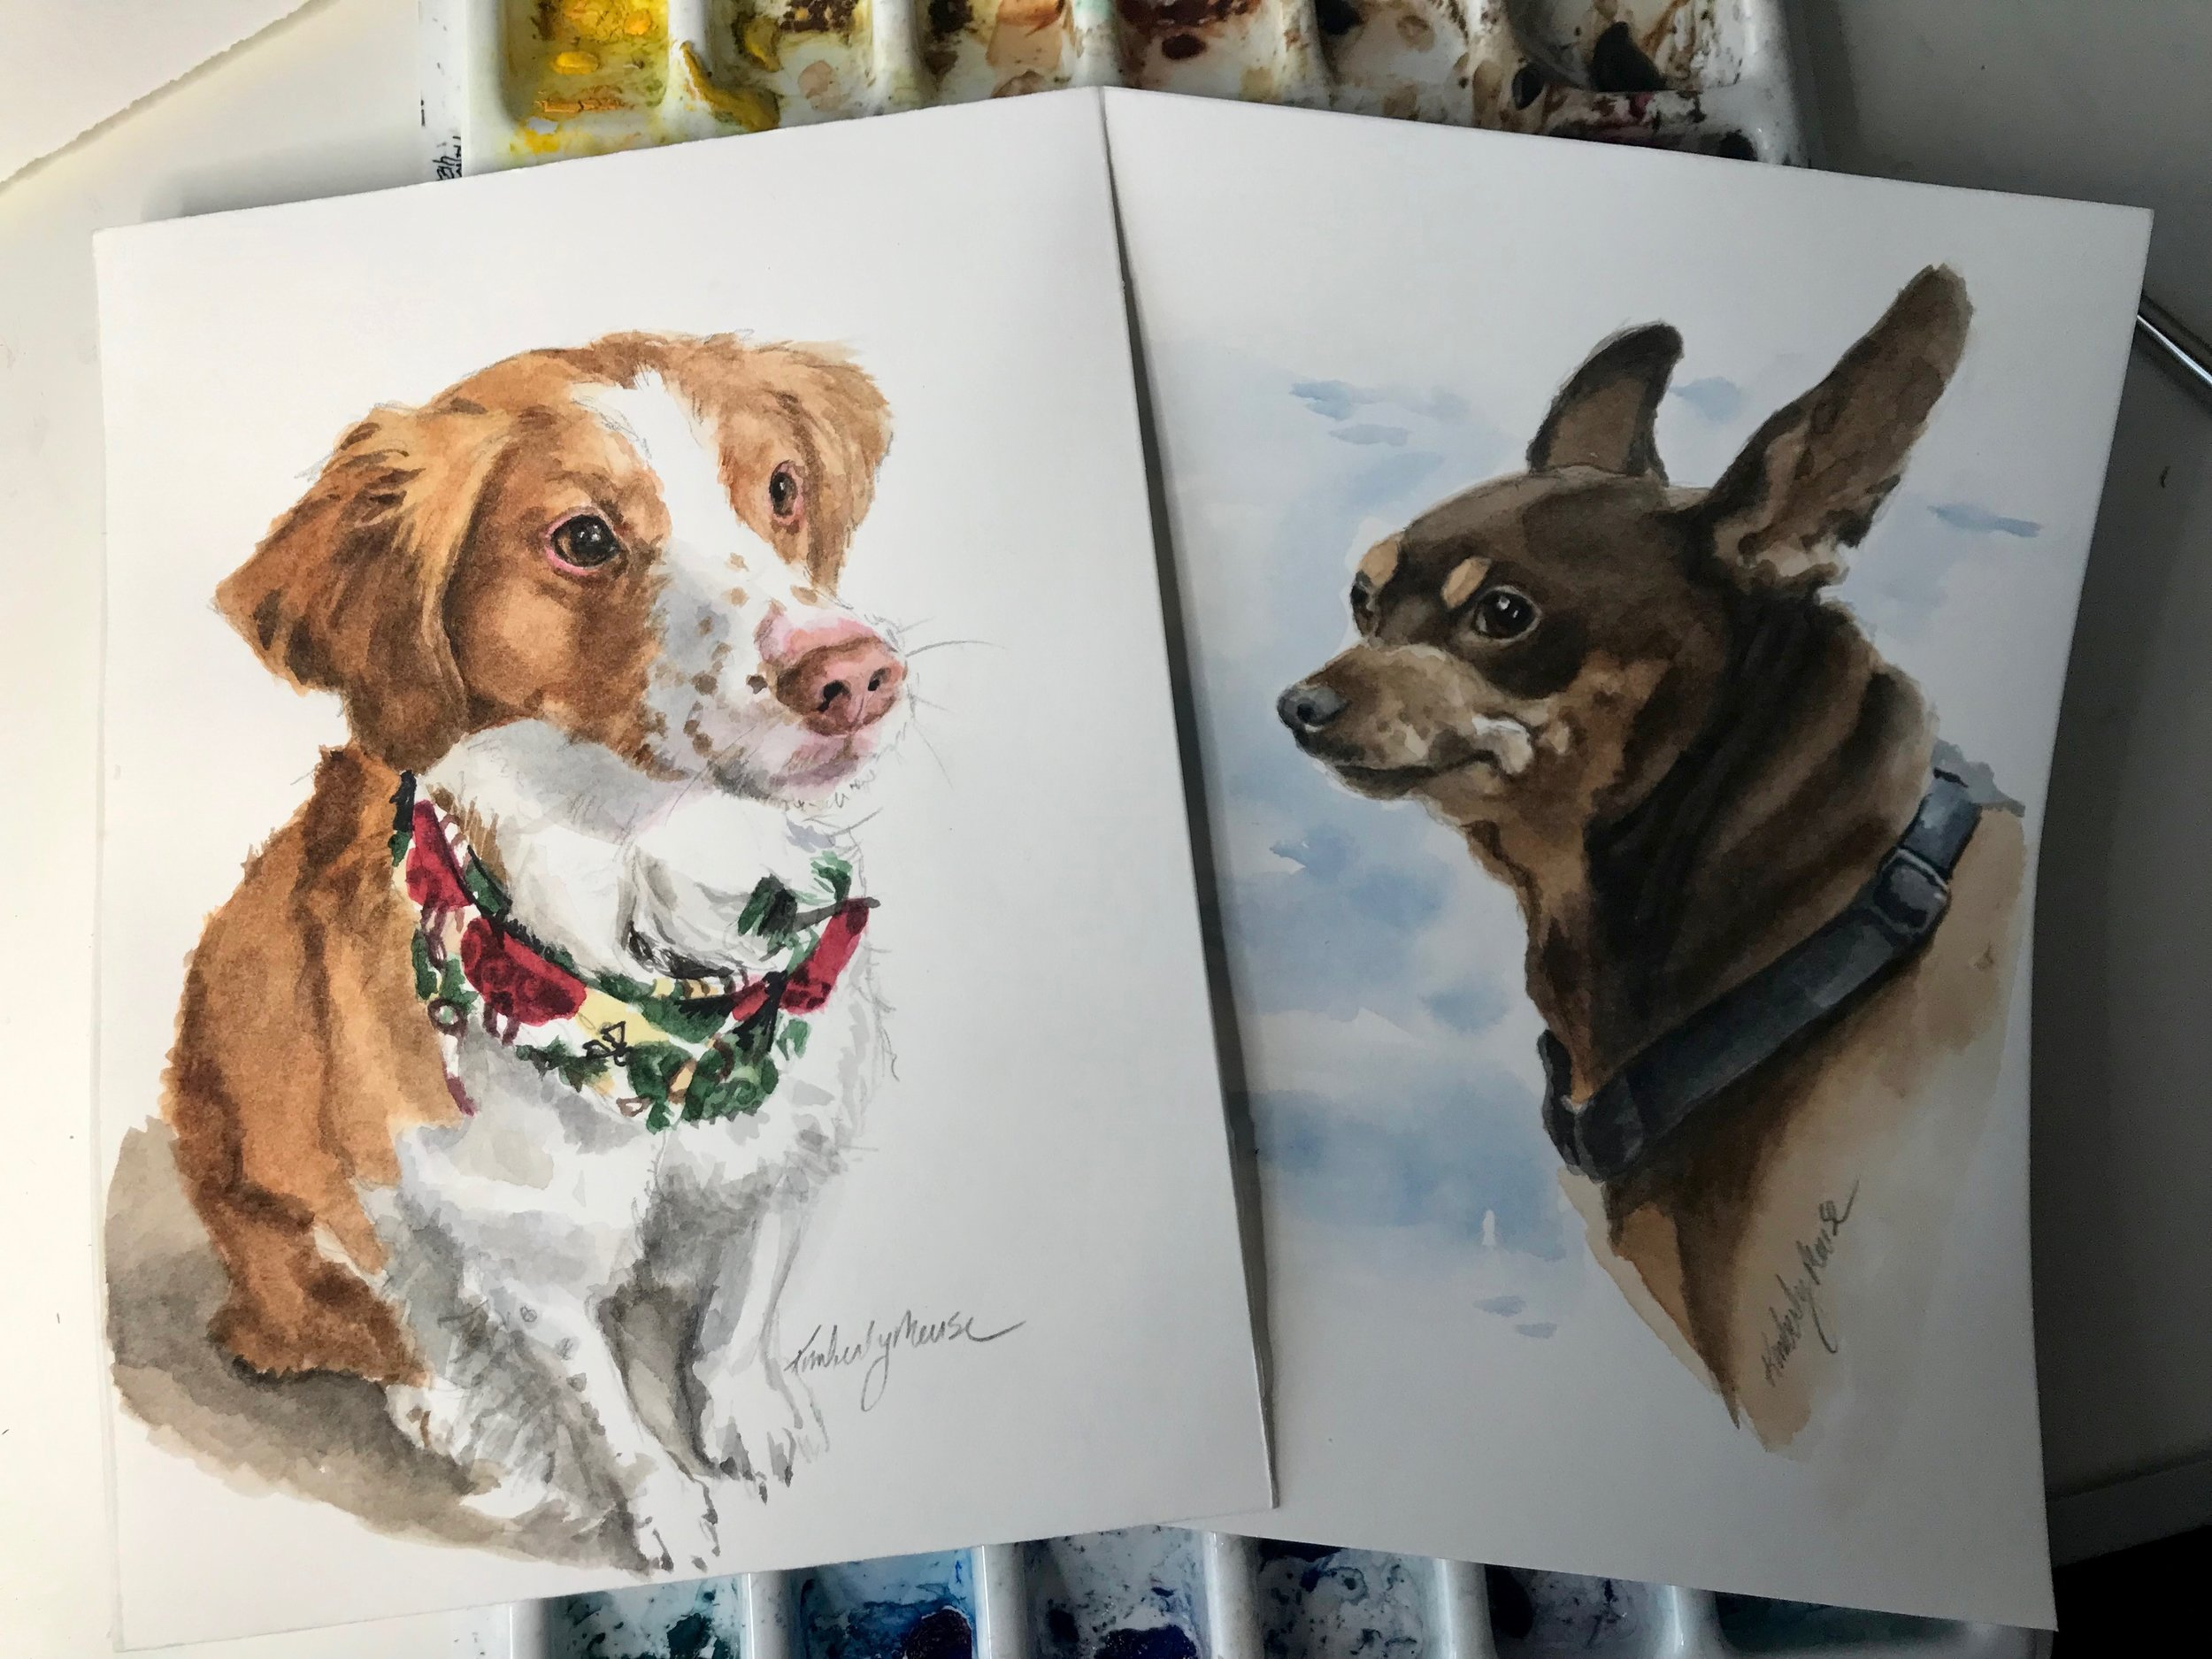 Sketches in watercolor